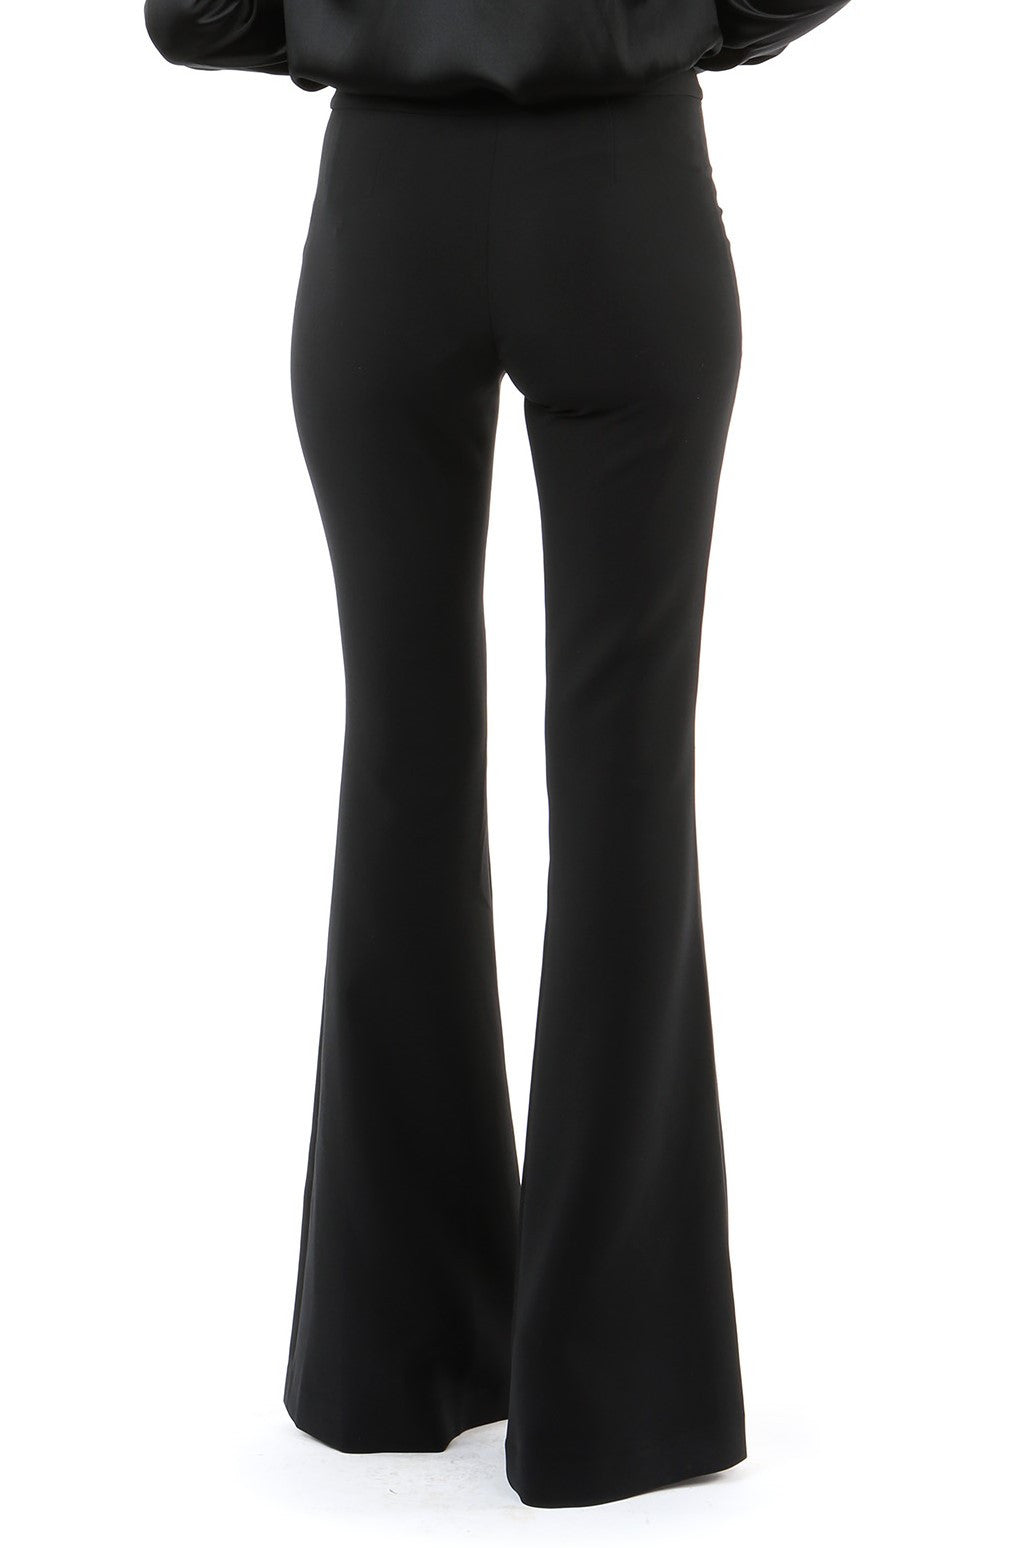 Jay Godfrey Black Flare Pants - Back View